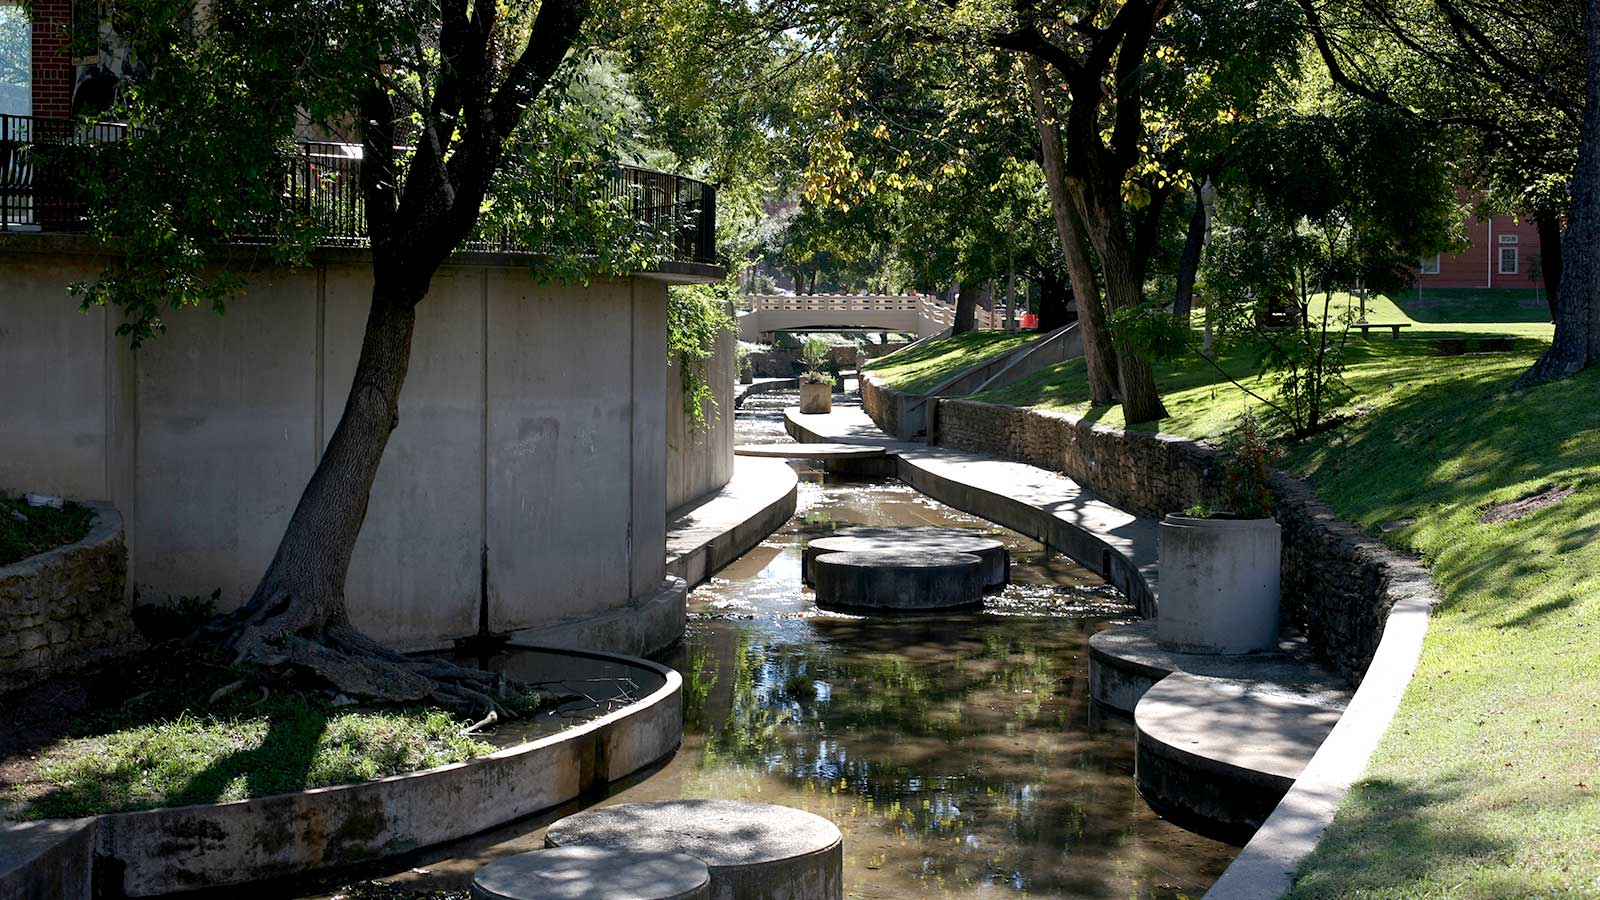 Waco Creek provides a peaceful walkway stretching from the Family and Consumer Sciences Building to the Bear Habitat.